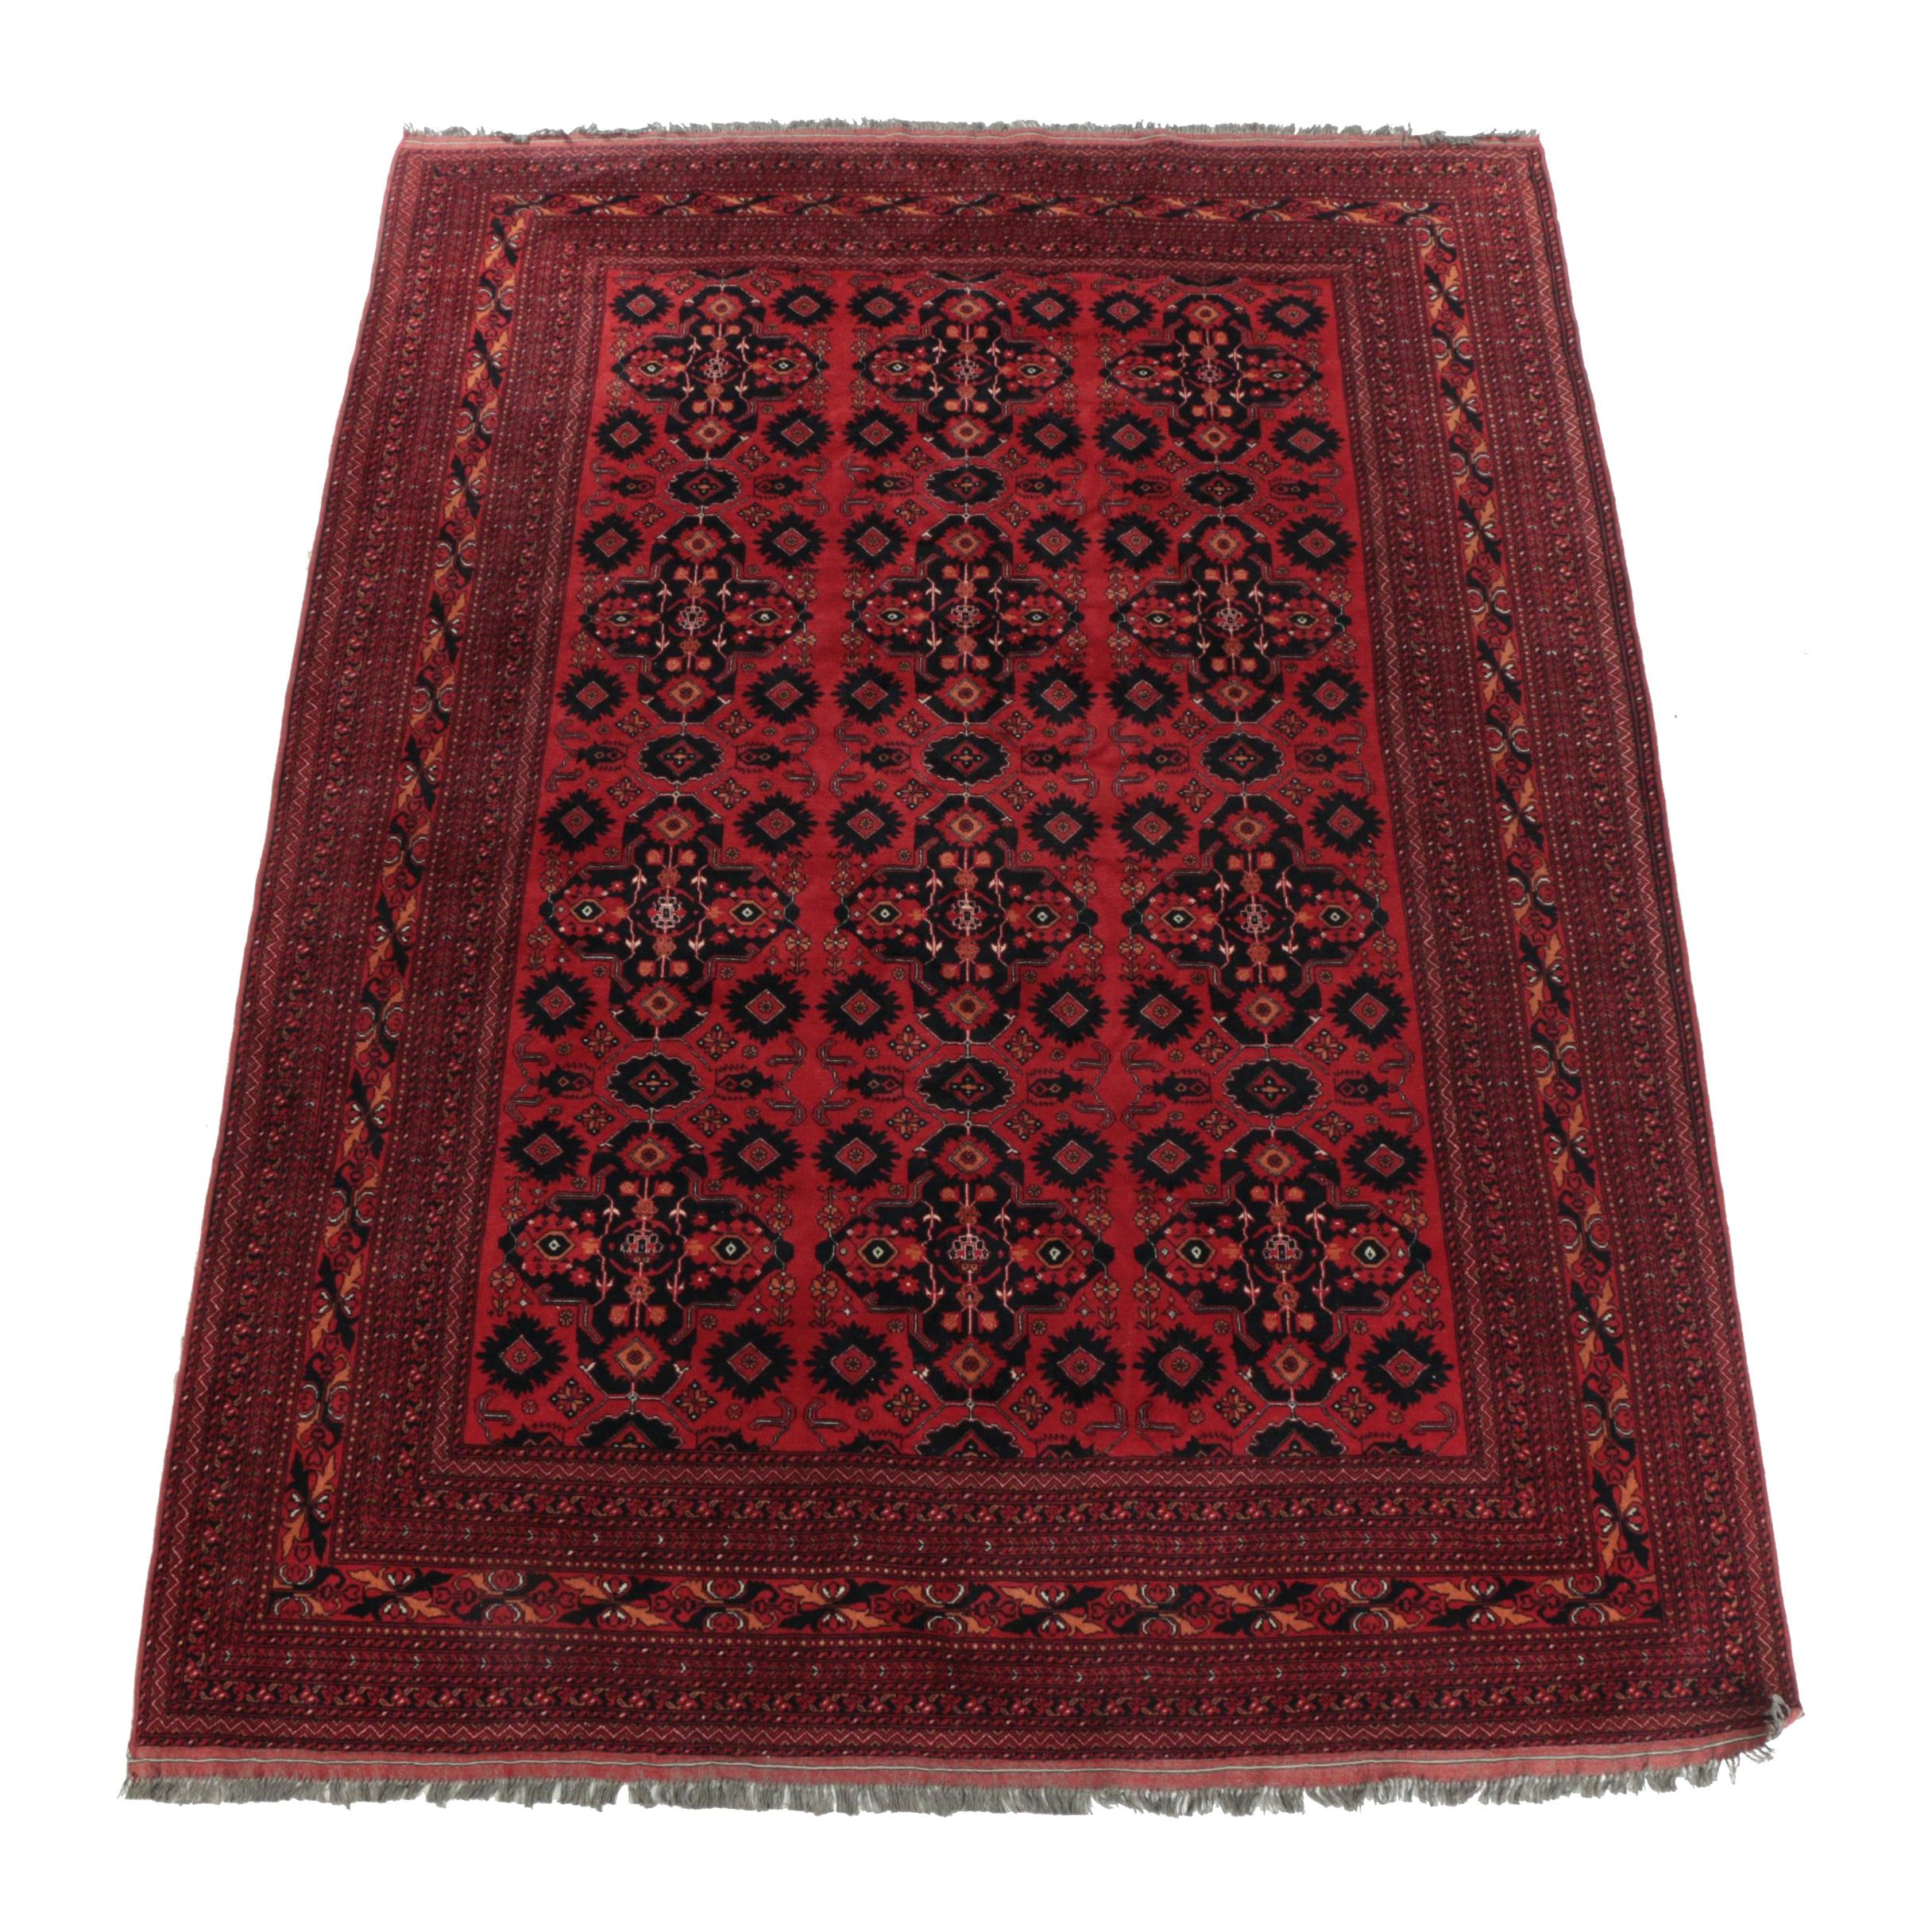 Hand-Knotted Afghani Turkmen Wool Room Sized Rug